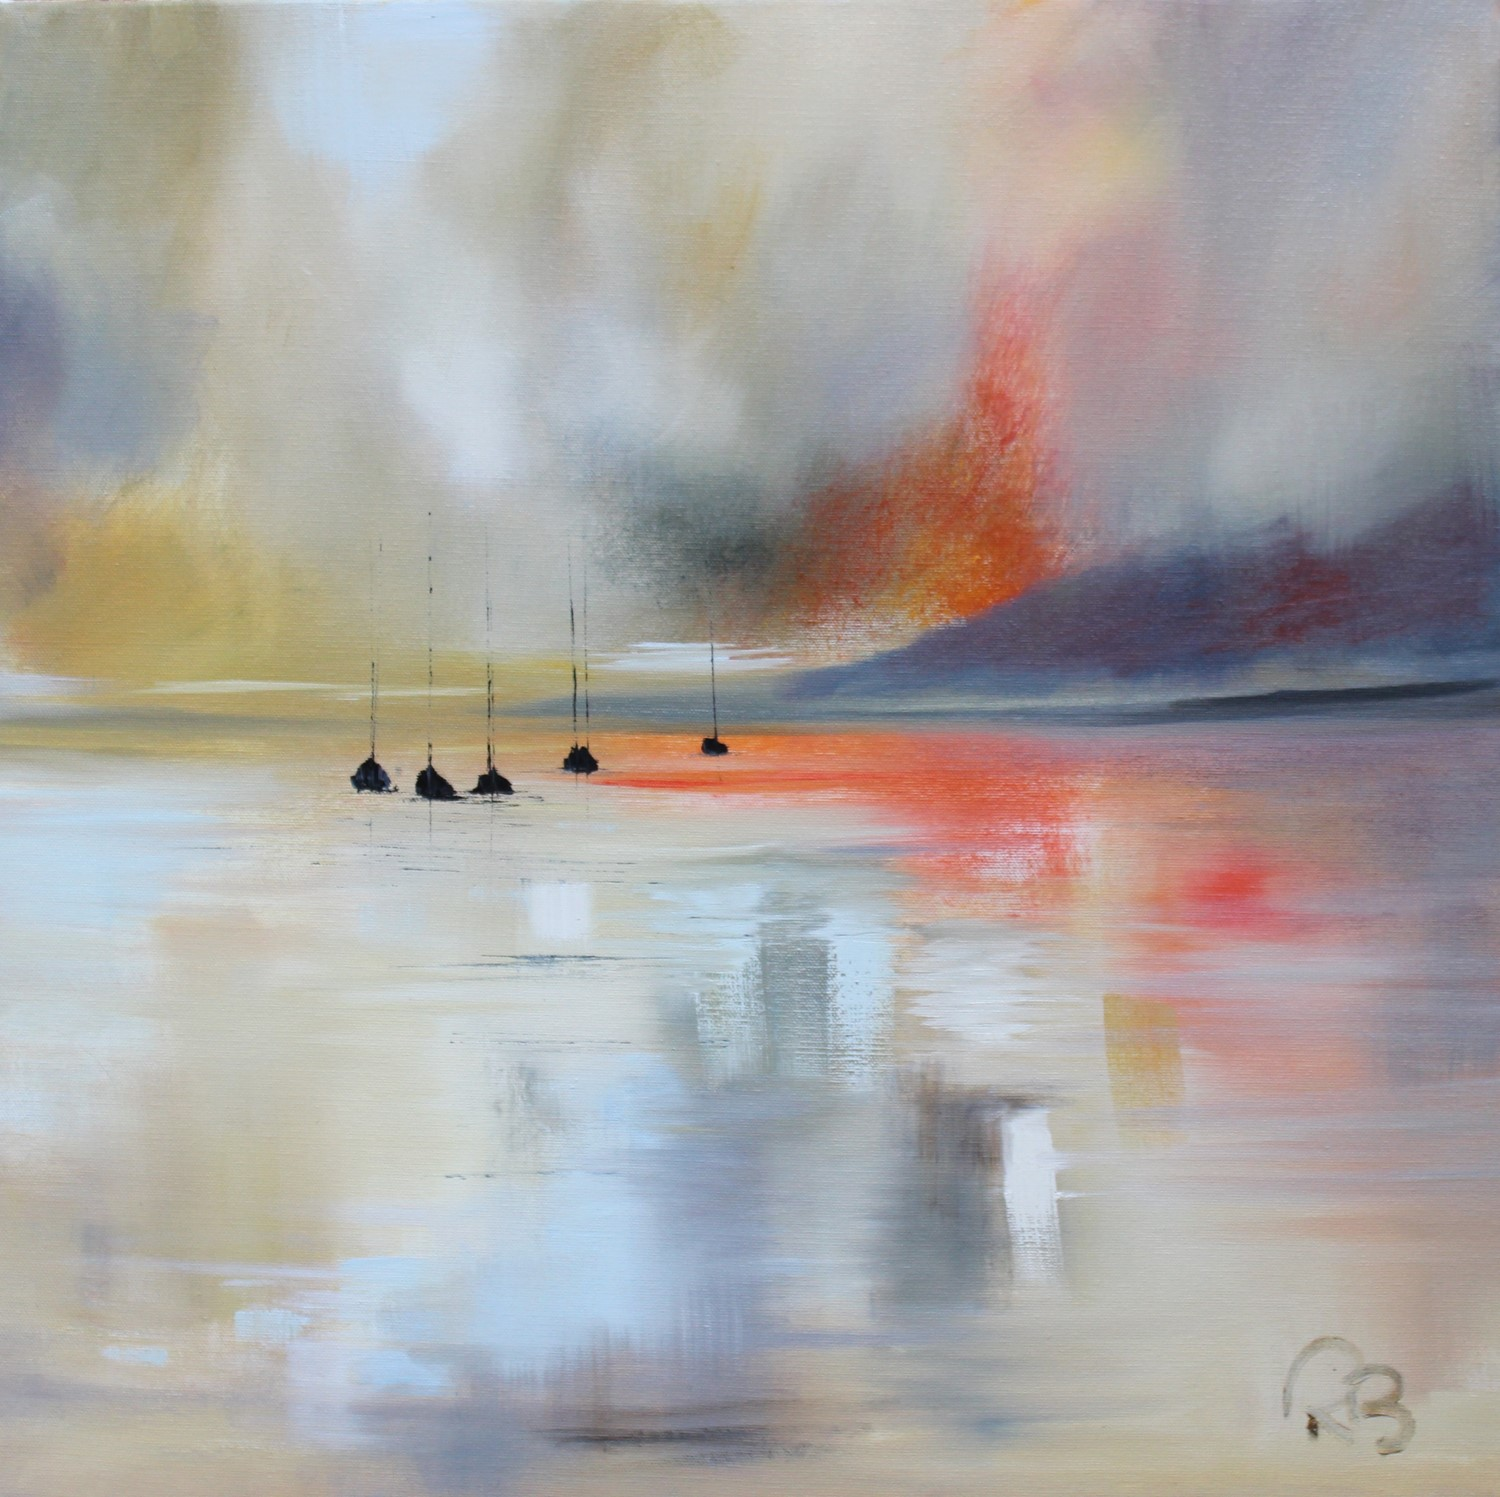 'A Misty Evening' by artist Rosanne Barr